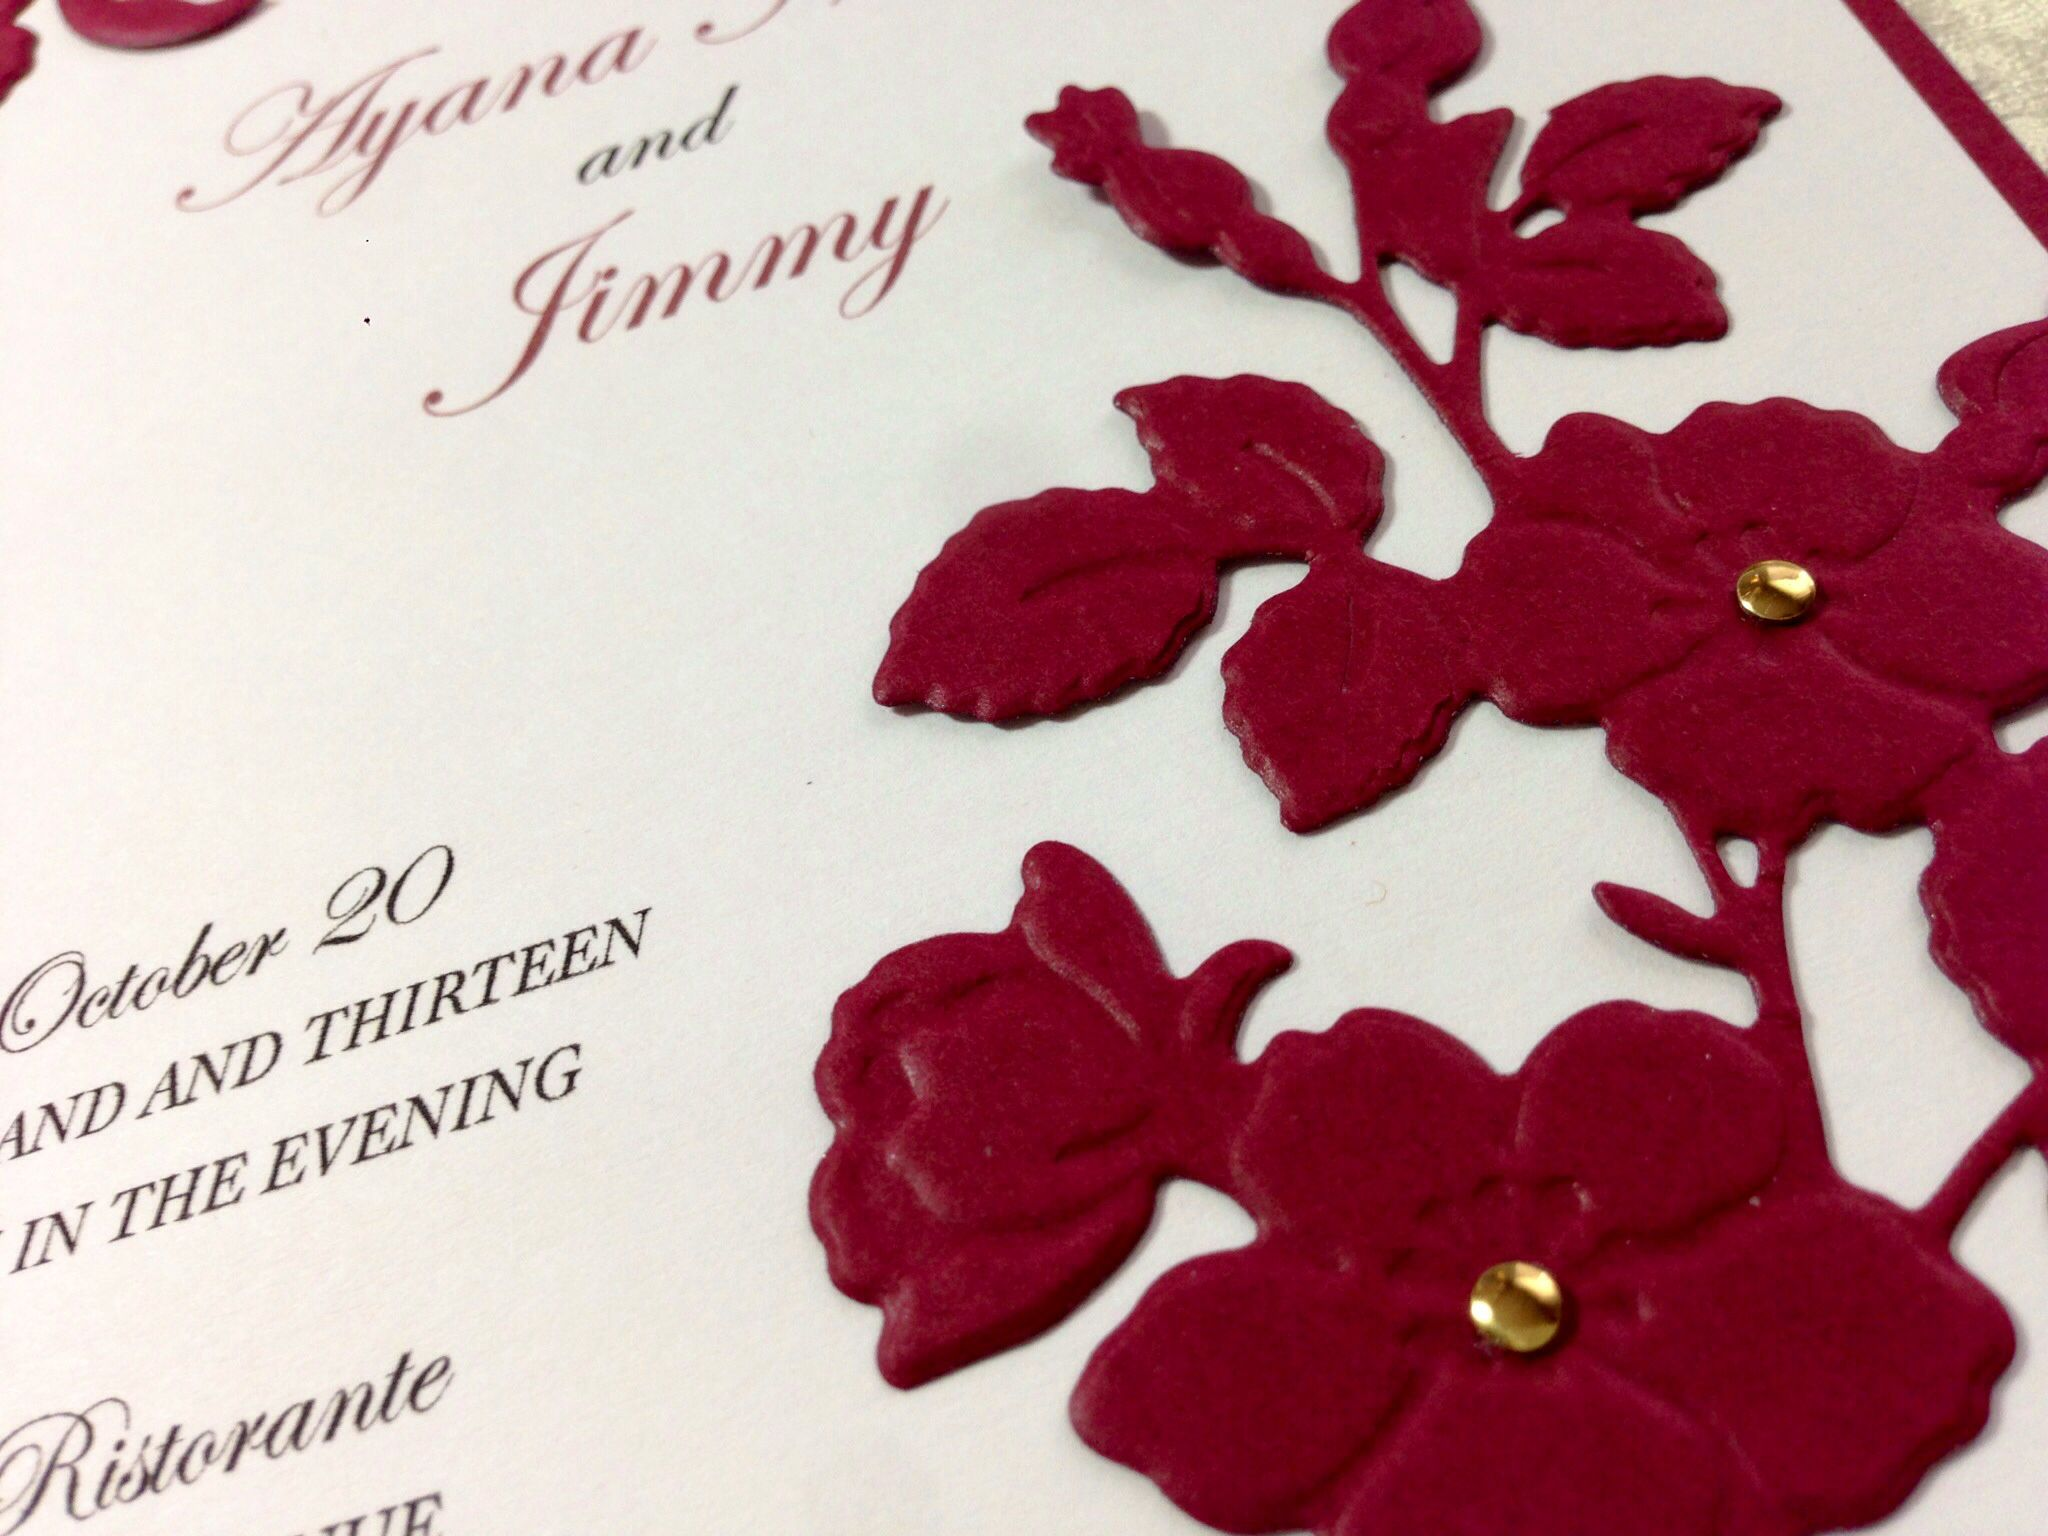 wedding renewal invitation ideas%0A Vow Renewal Invitation flower diecut detail  designed atThe PaperMint  my  crafting workshop